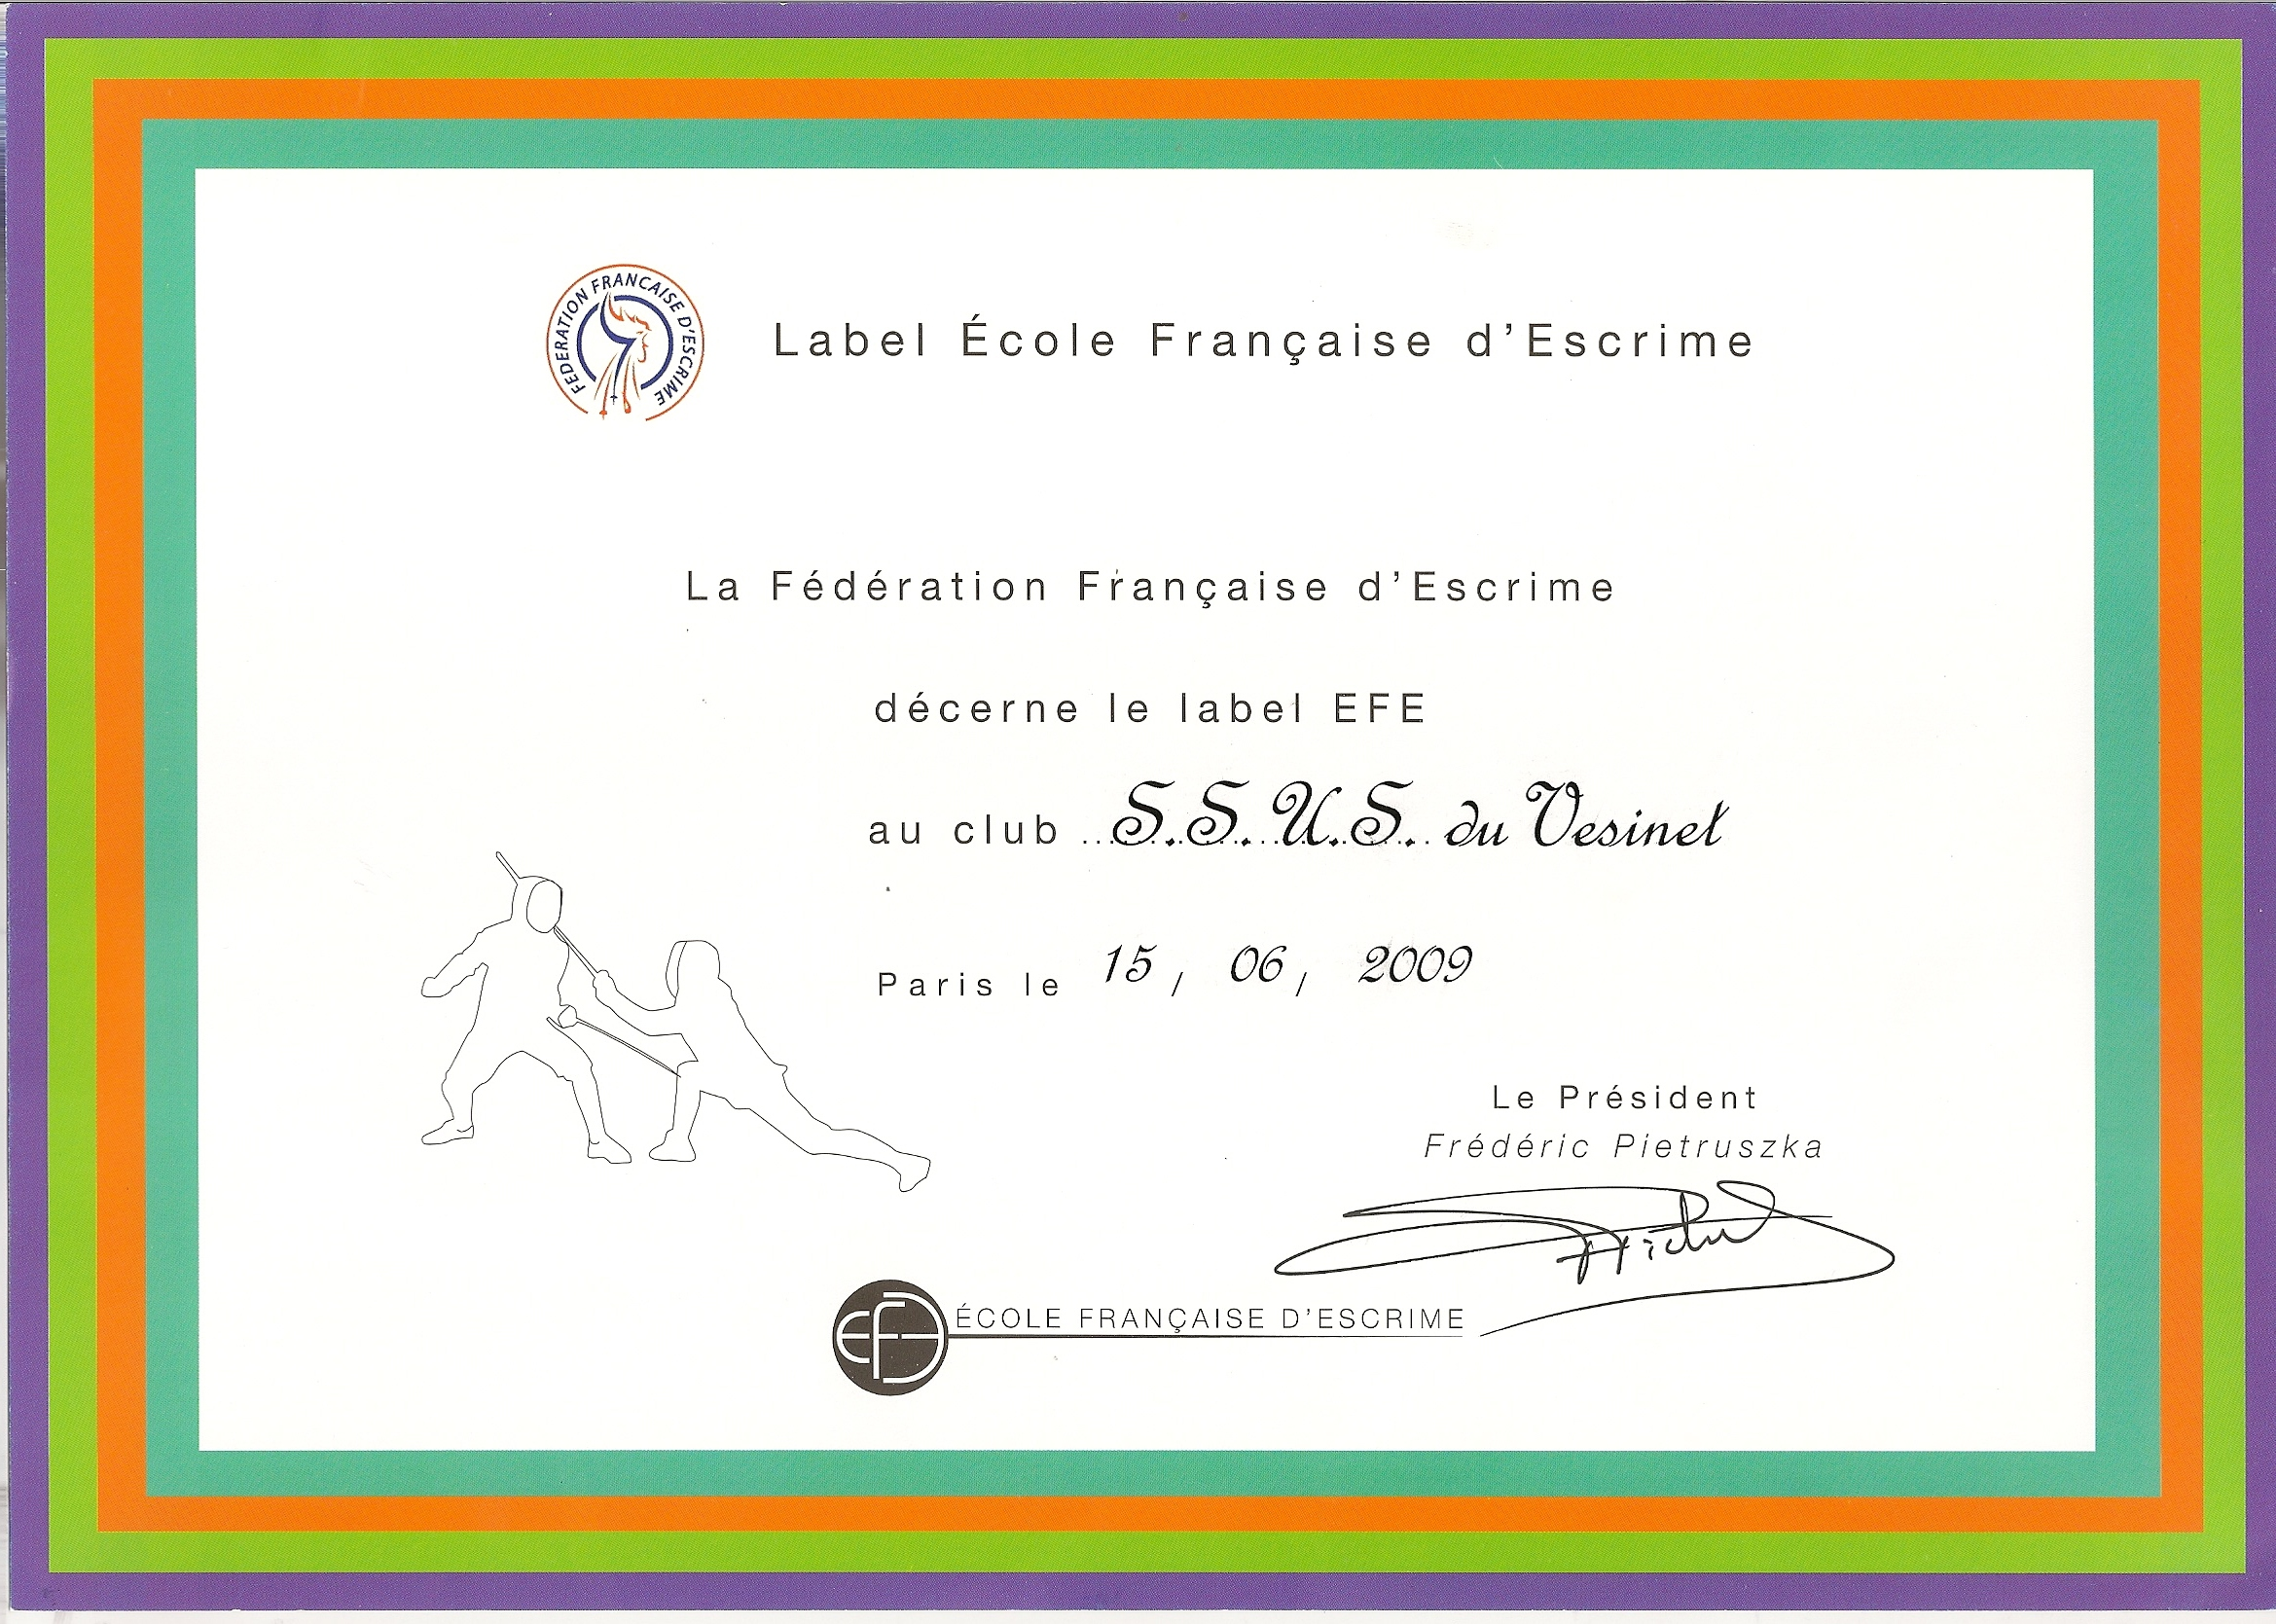 Label Ecole Franaise dEscrime